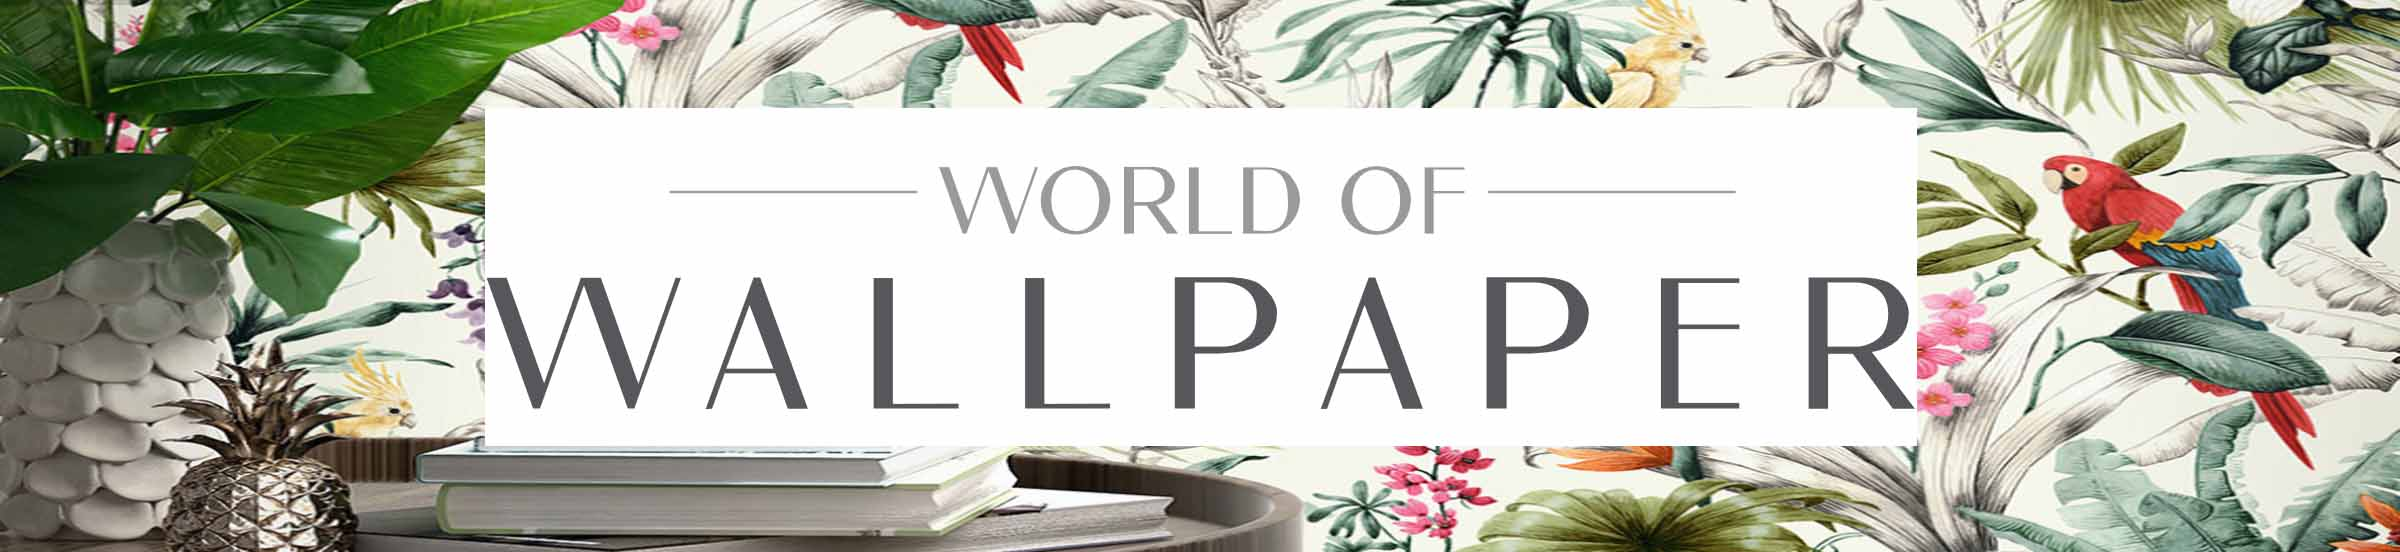 World Of Wallpaper Discount Codes